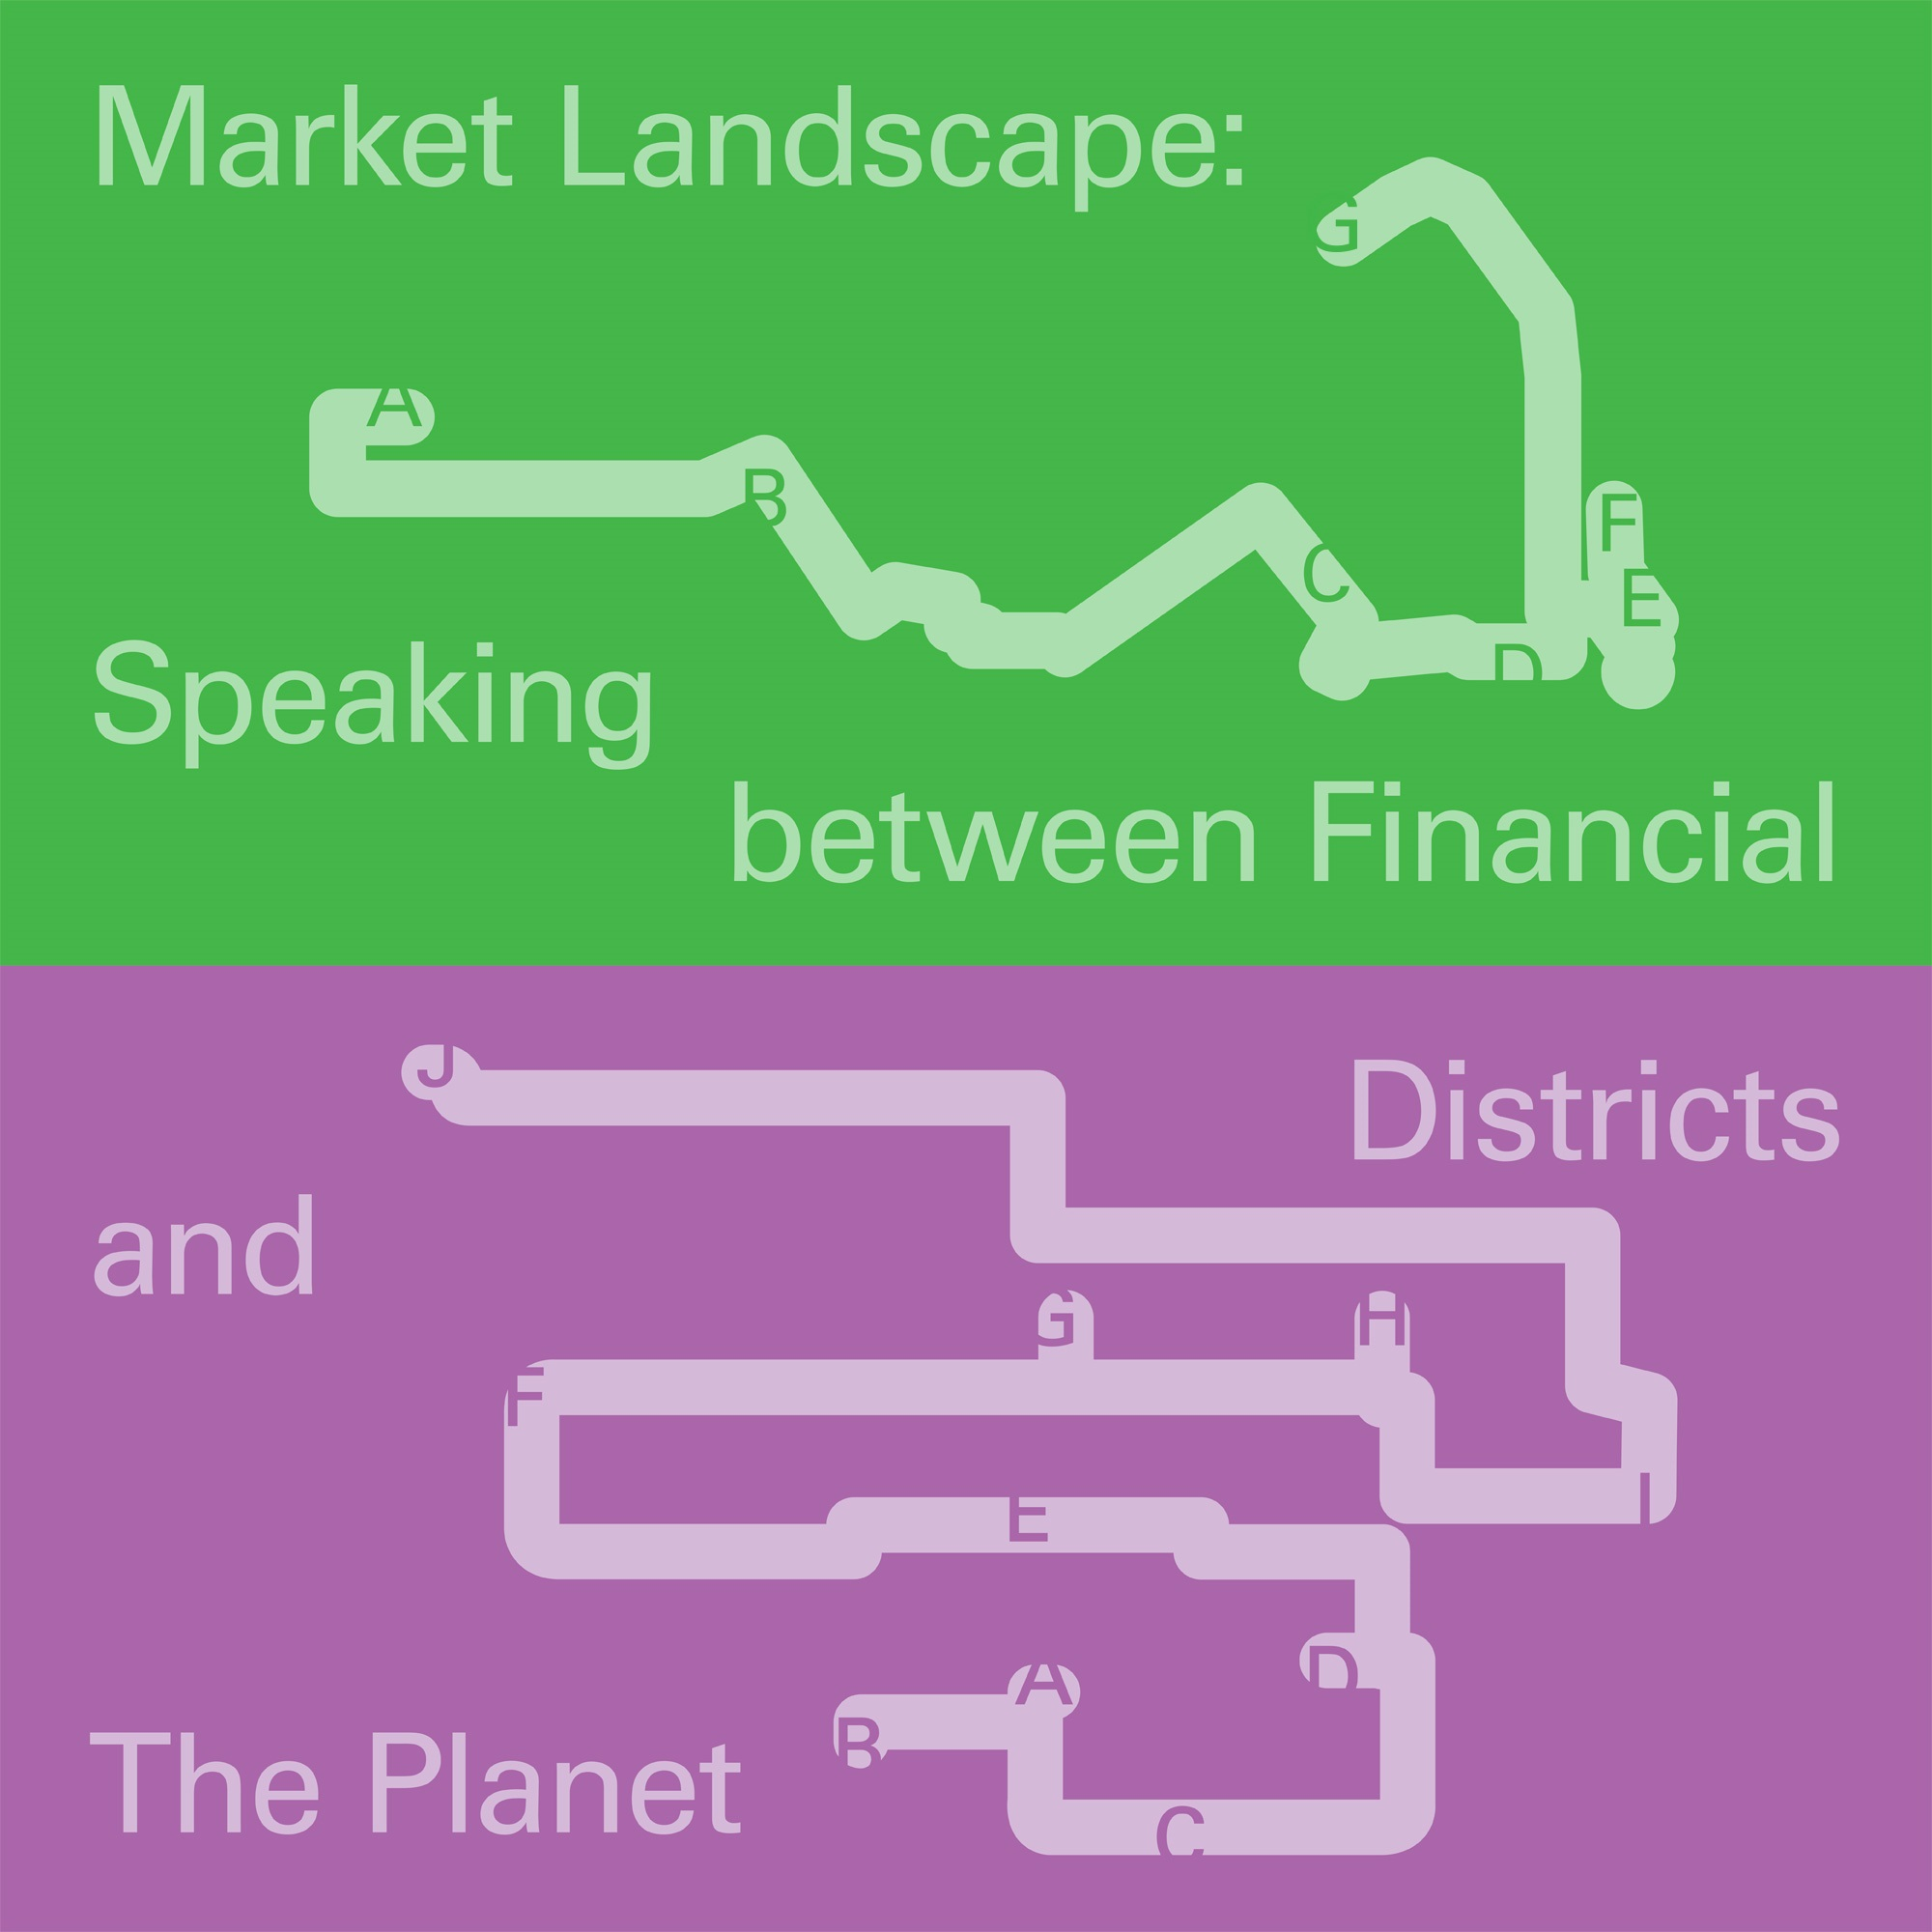 Market Landscape: Speaking between Financial Districts and The Planet